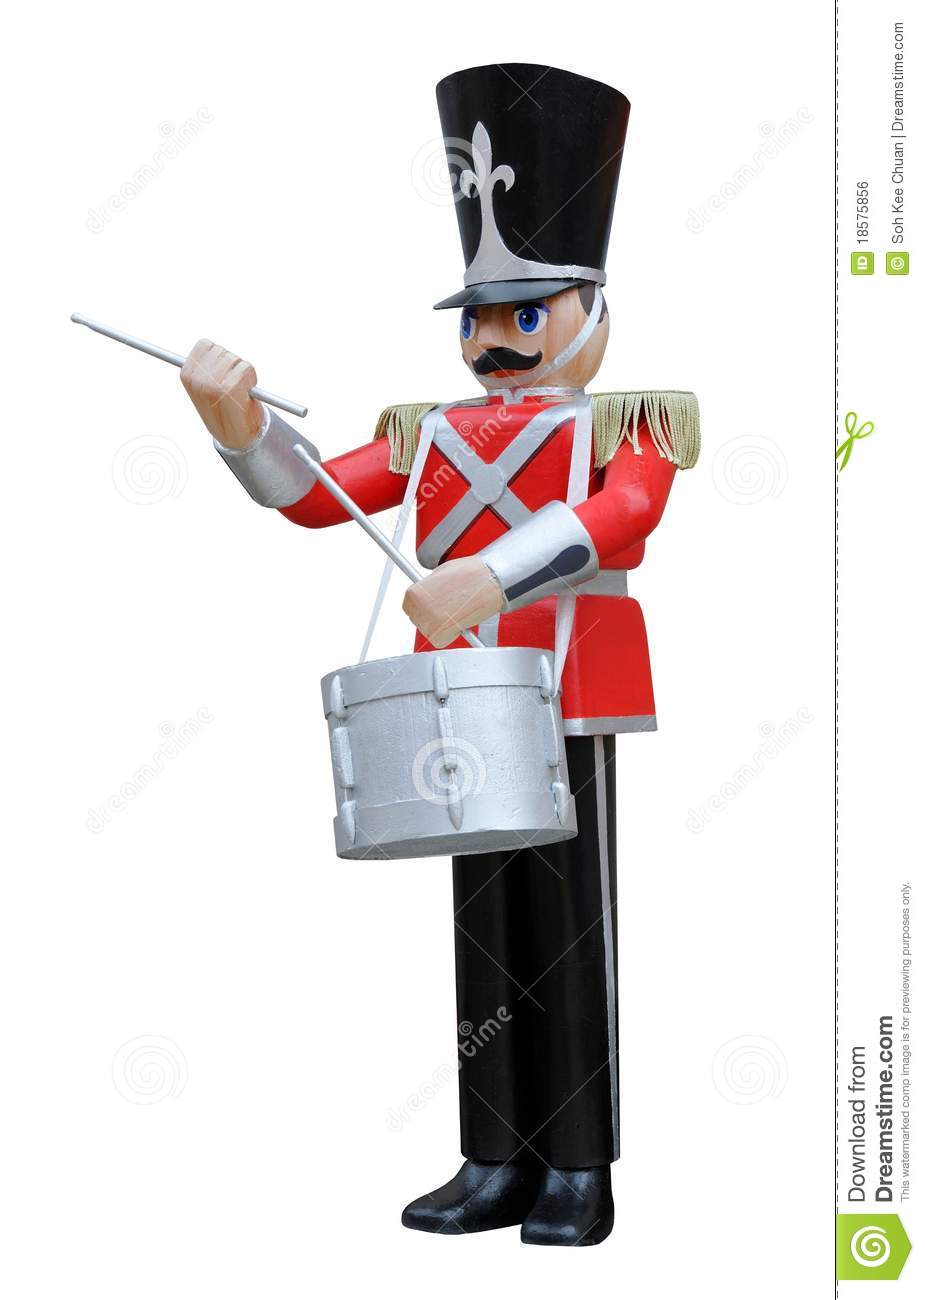 Toy Soldier Drummer Royalty Free Stock Image - Image: 18575856